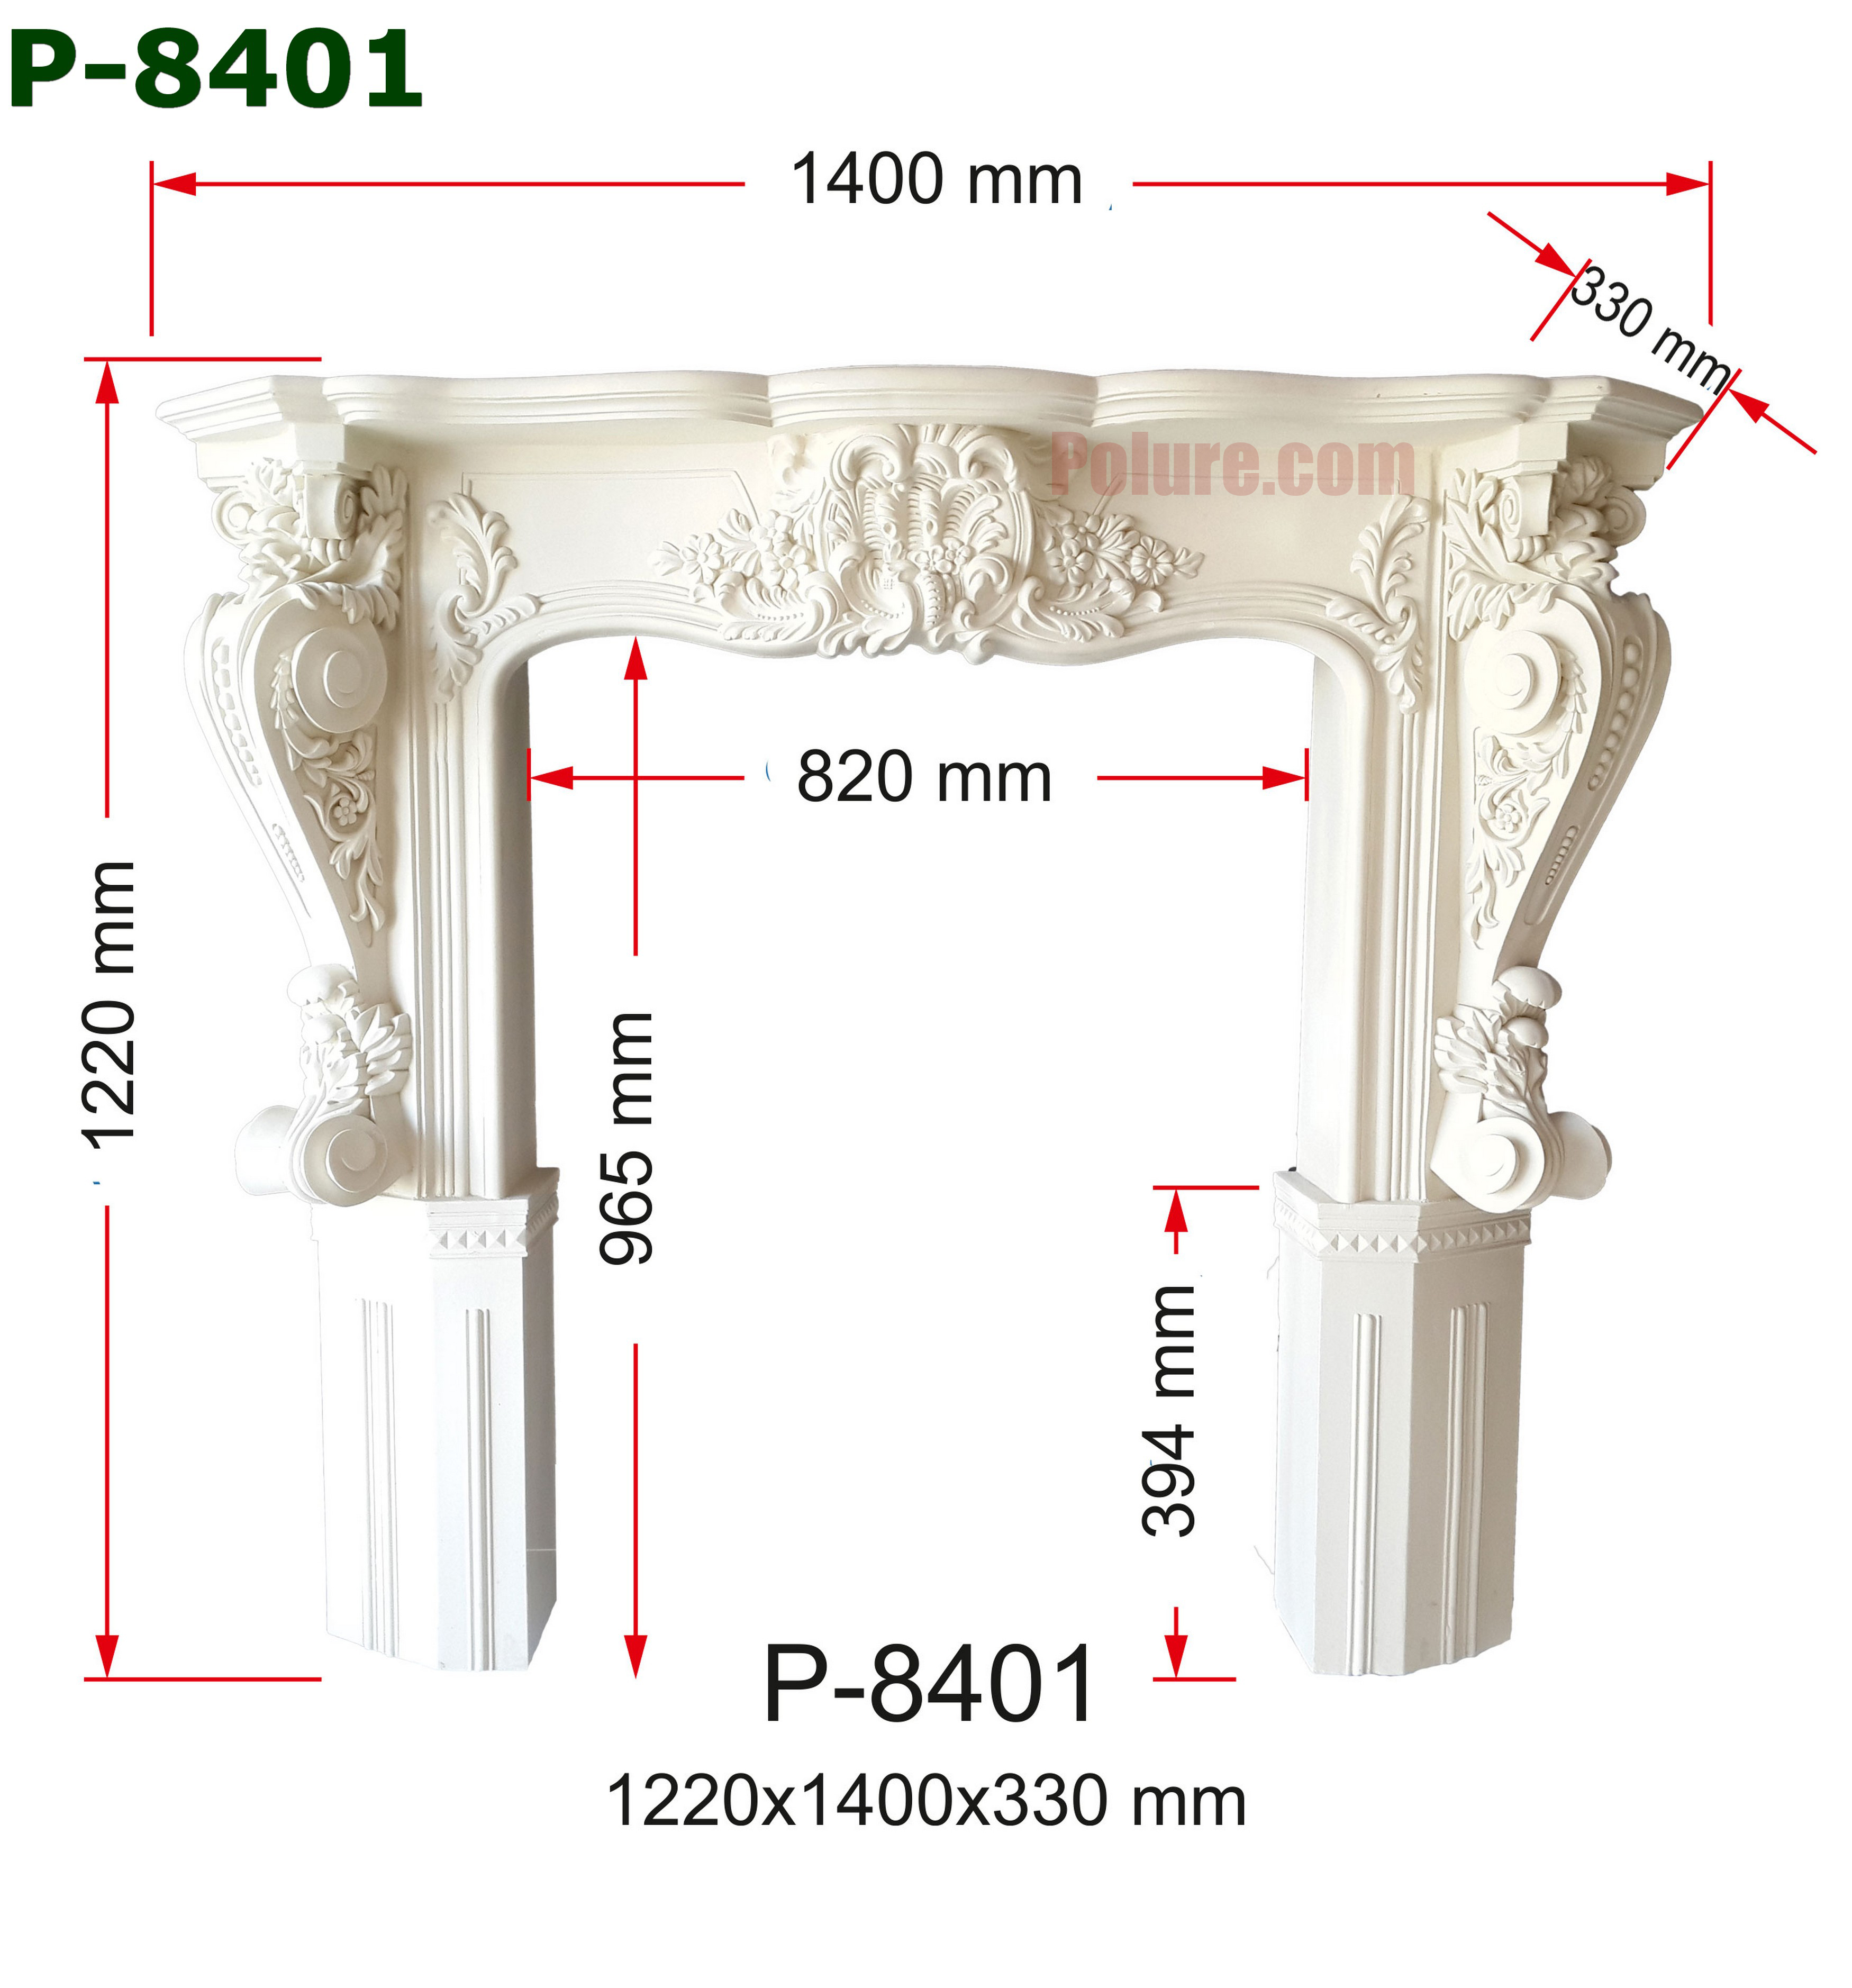 p-8401-polyurethane-decorative-moulding-carved-wooden-look-imitation-pu-fireplace-ornamental-carving-motif-cracking-gold-leaf-painted-manufacturer-decoration-price (12)